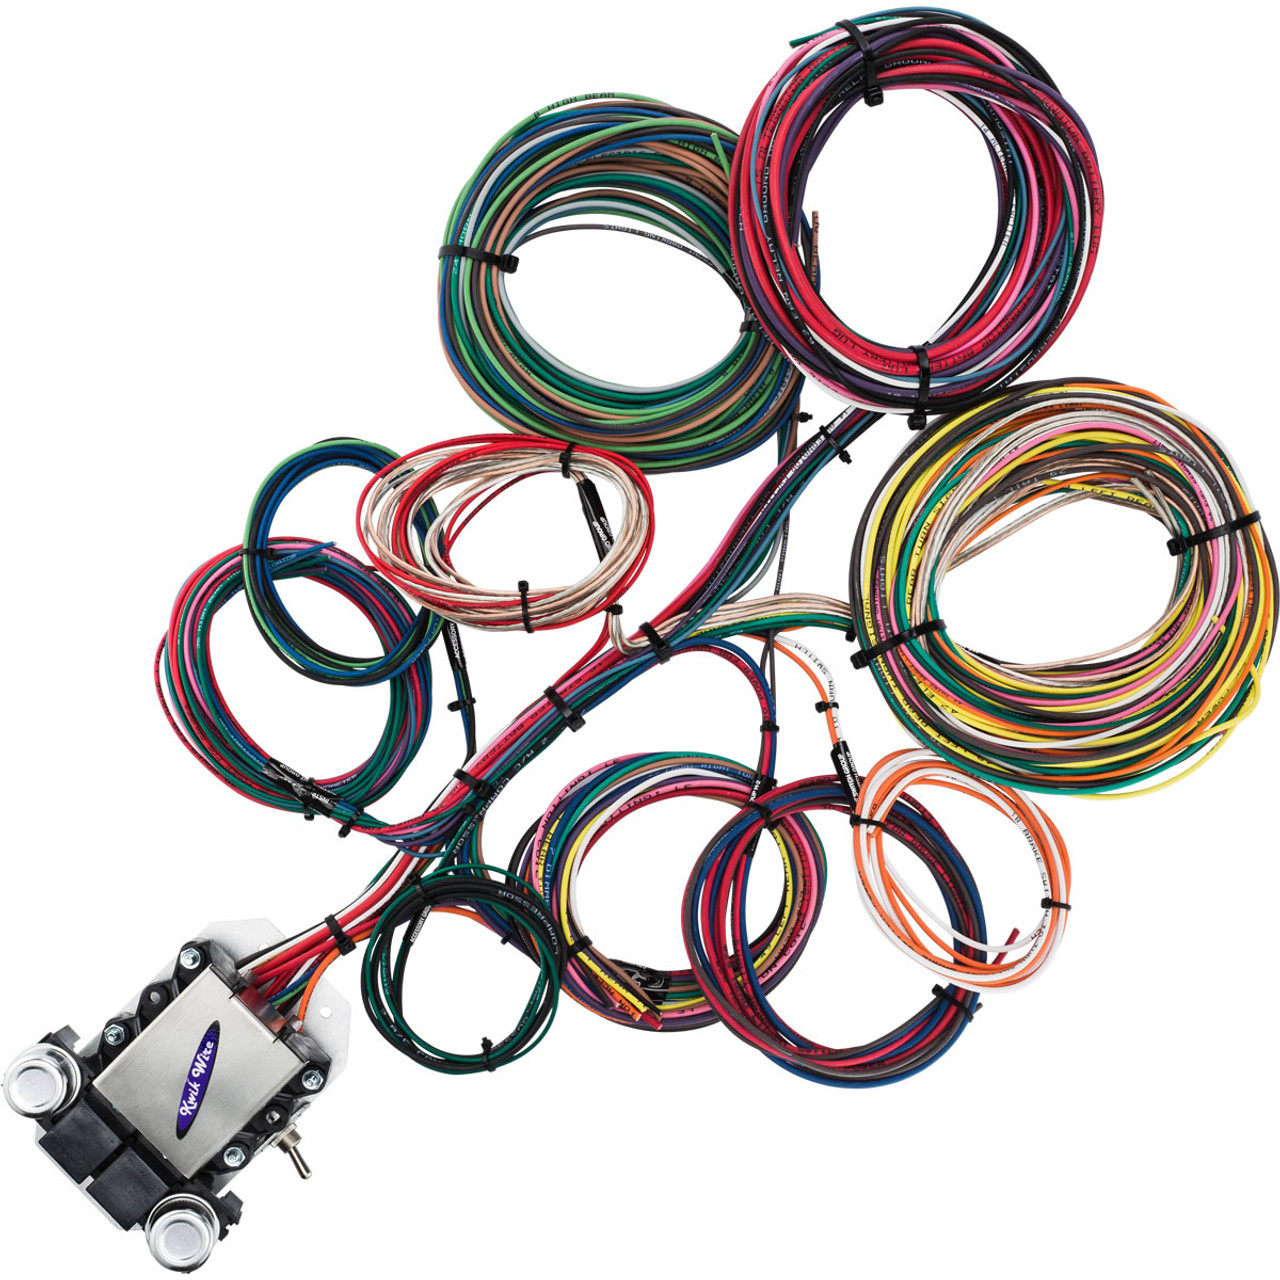 14 Circuit Wire Harness Electrify Your Ride 1974 F250 Wiring